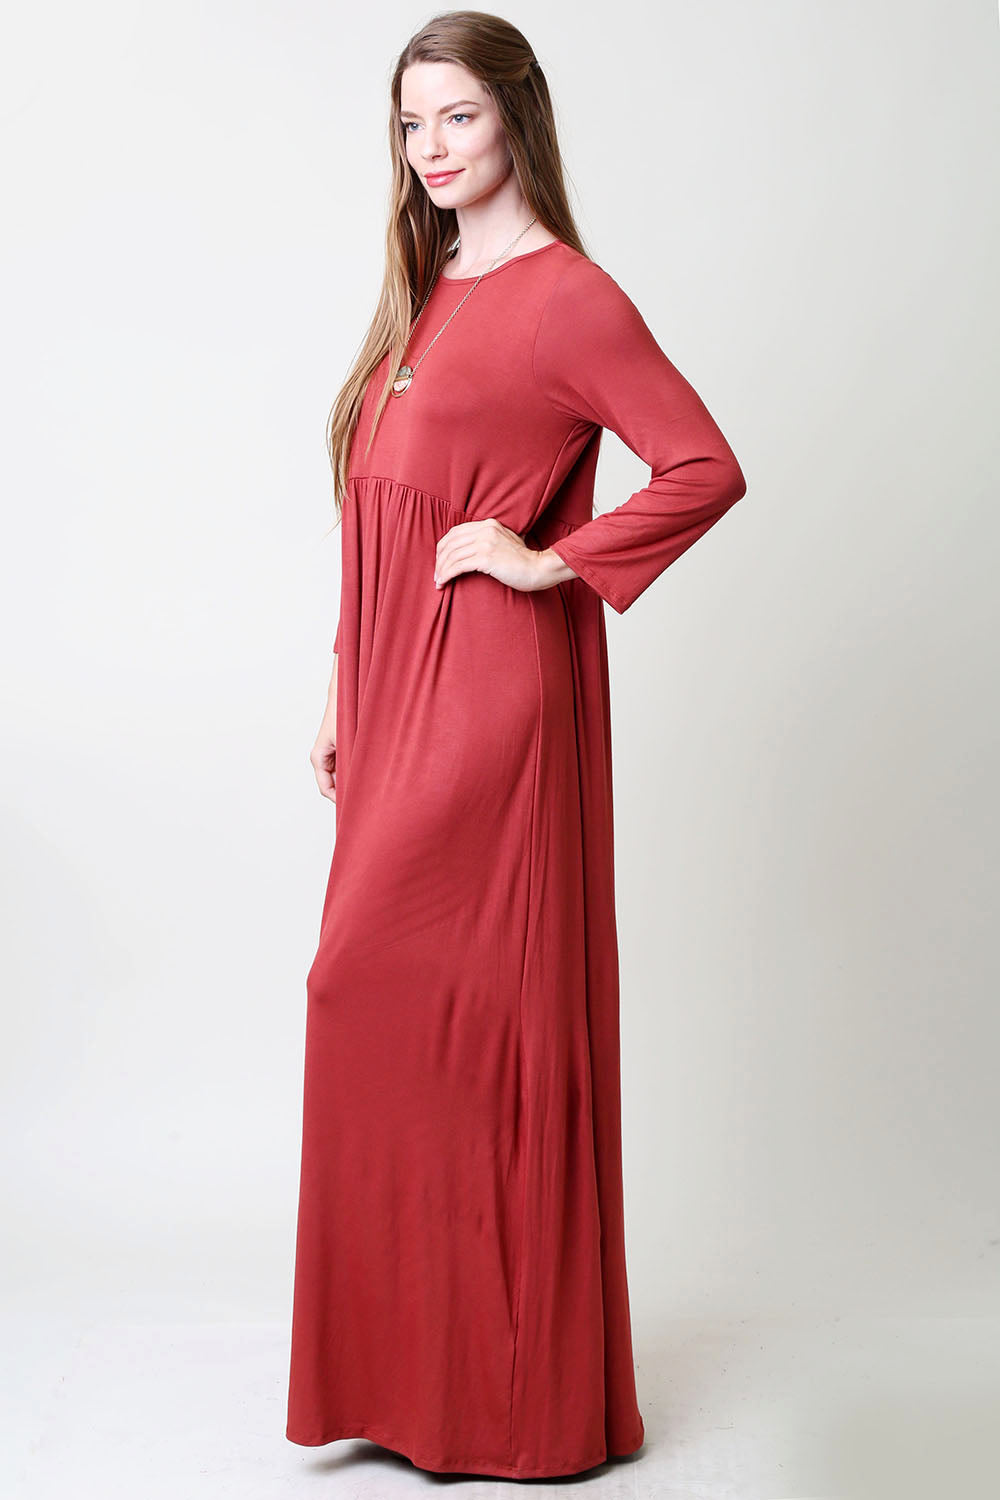 Flowy High Waist Maxi Dress : Marsala